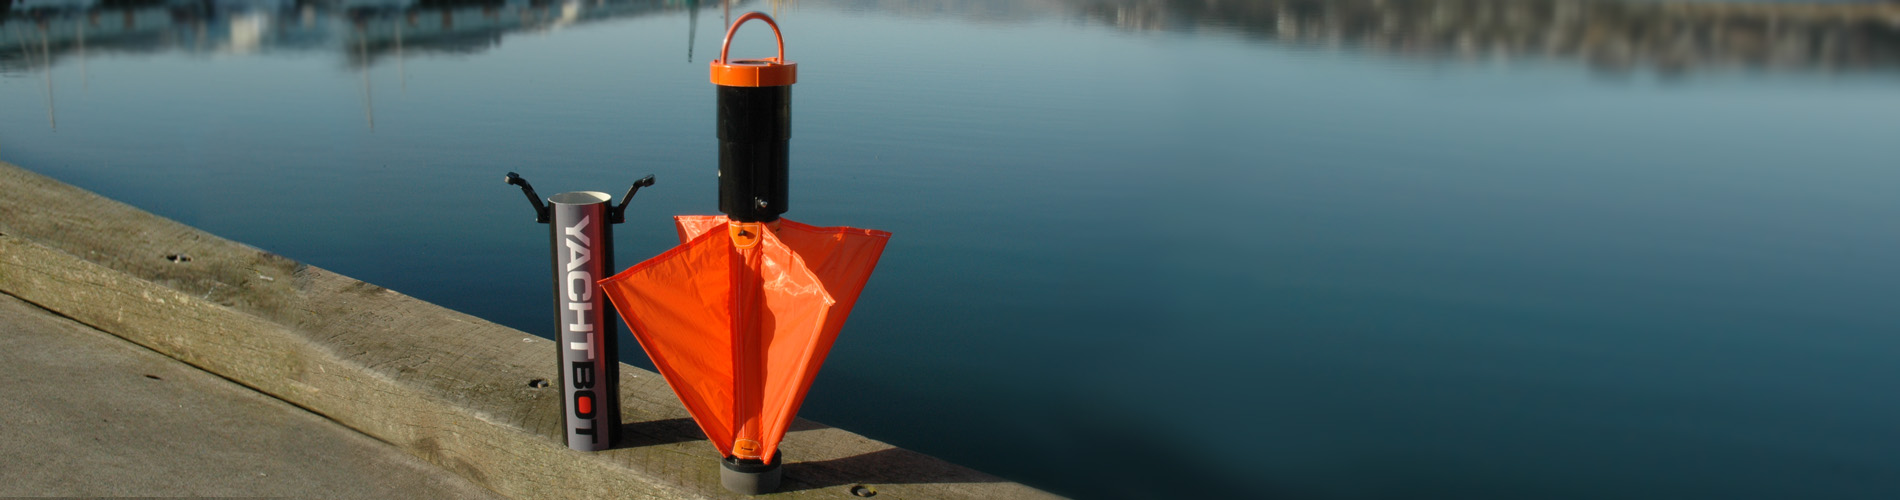 TideBot Tide measurement system sitting on a wharf in Dunedin, Otago.